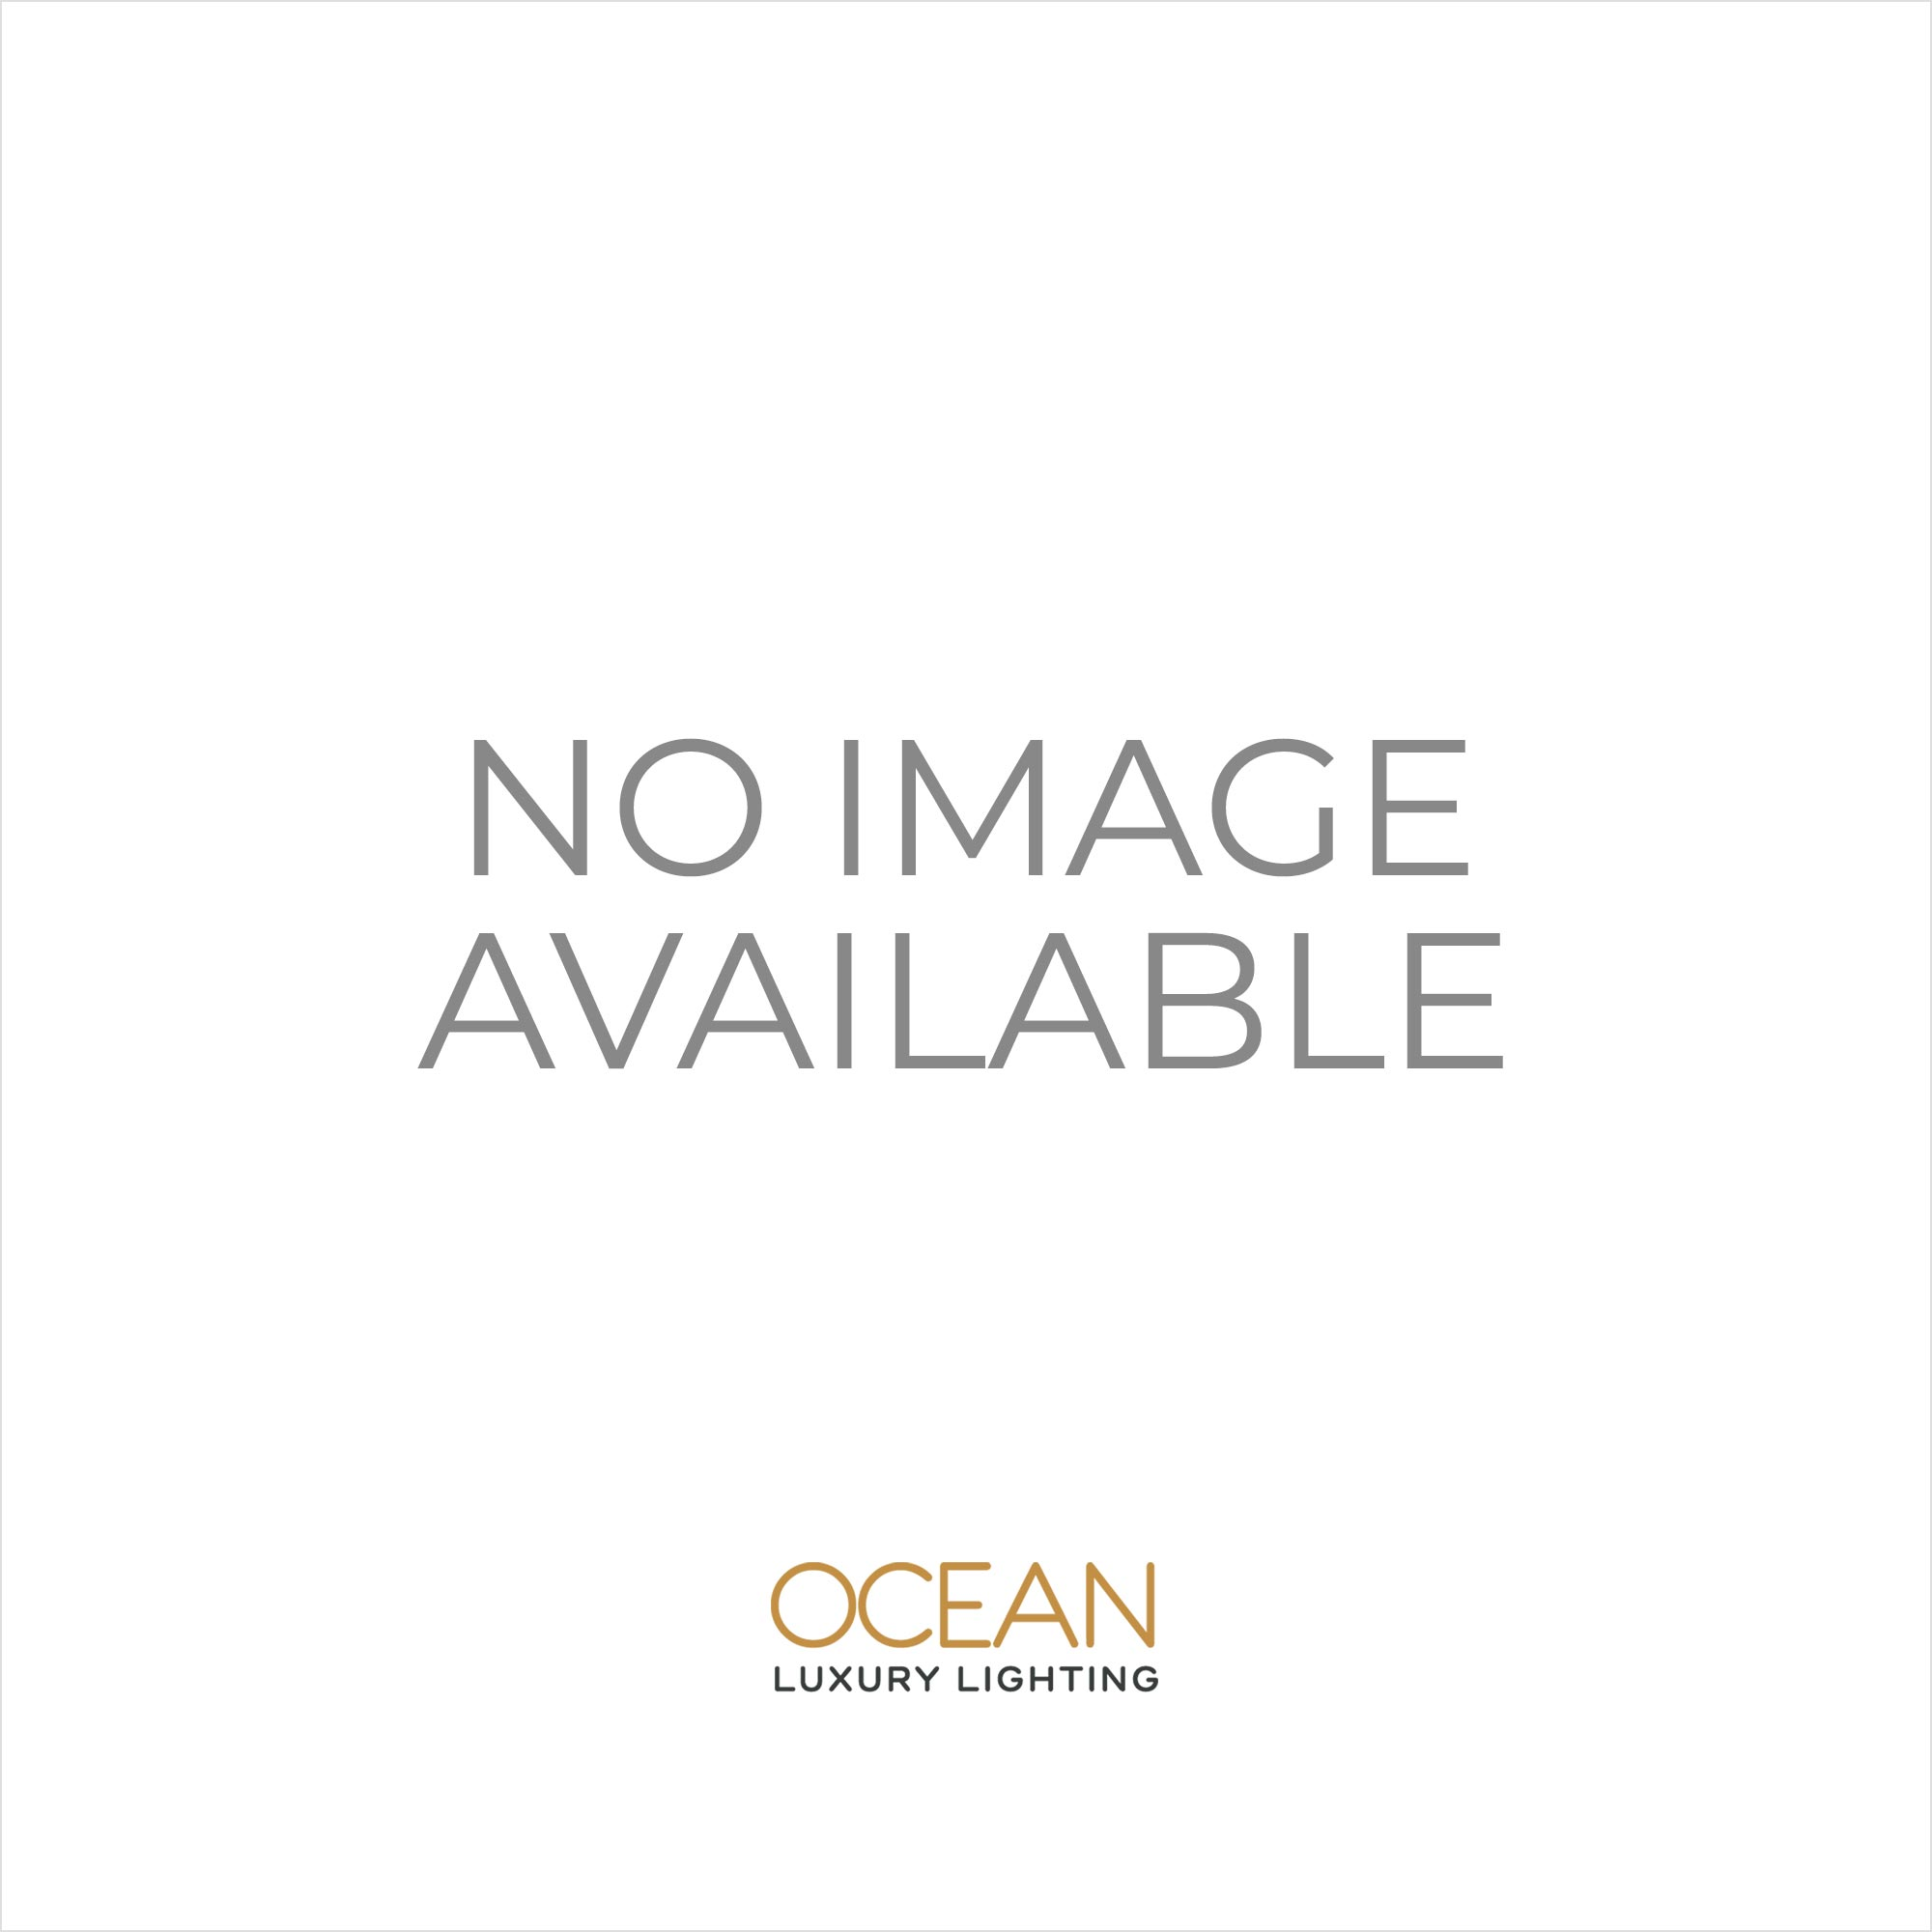 lights and of fixtures style table lamps legend m inch convenience stained country patterns def victorian home lamp diy hanging chandelier large fixture handcrafted pendant old tiffany kitchen antique inverted glass depot wide ceilings full jacket hi with ceiling floor light types size s value new outlet